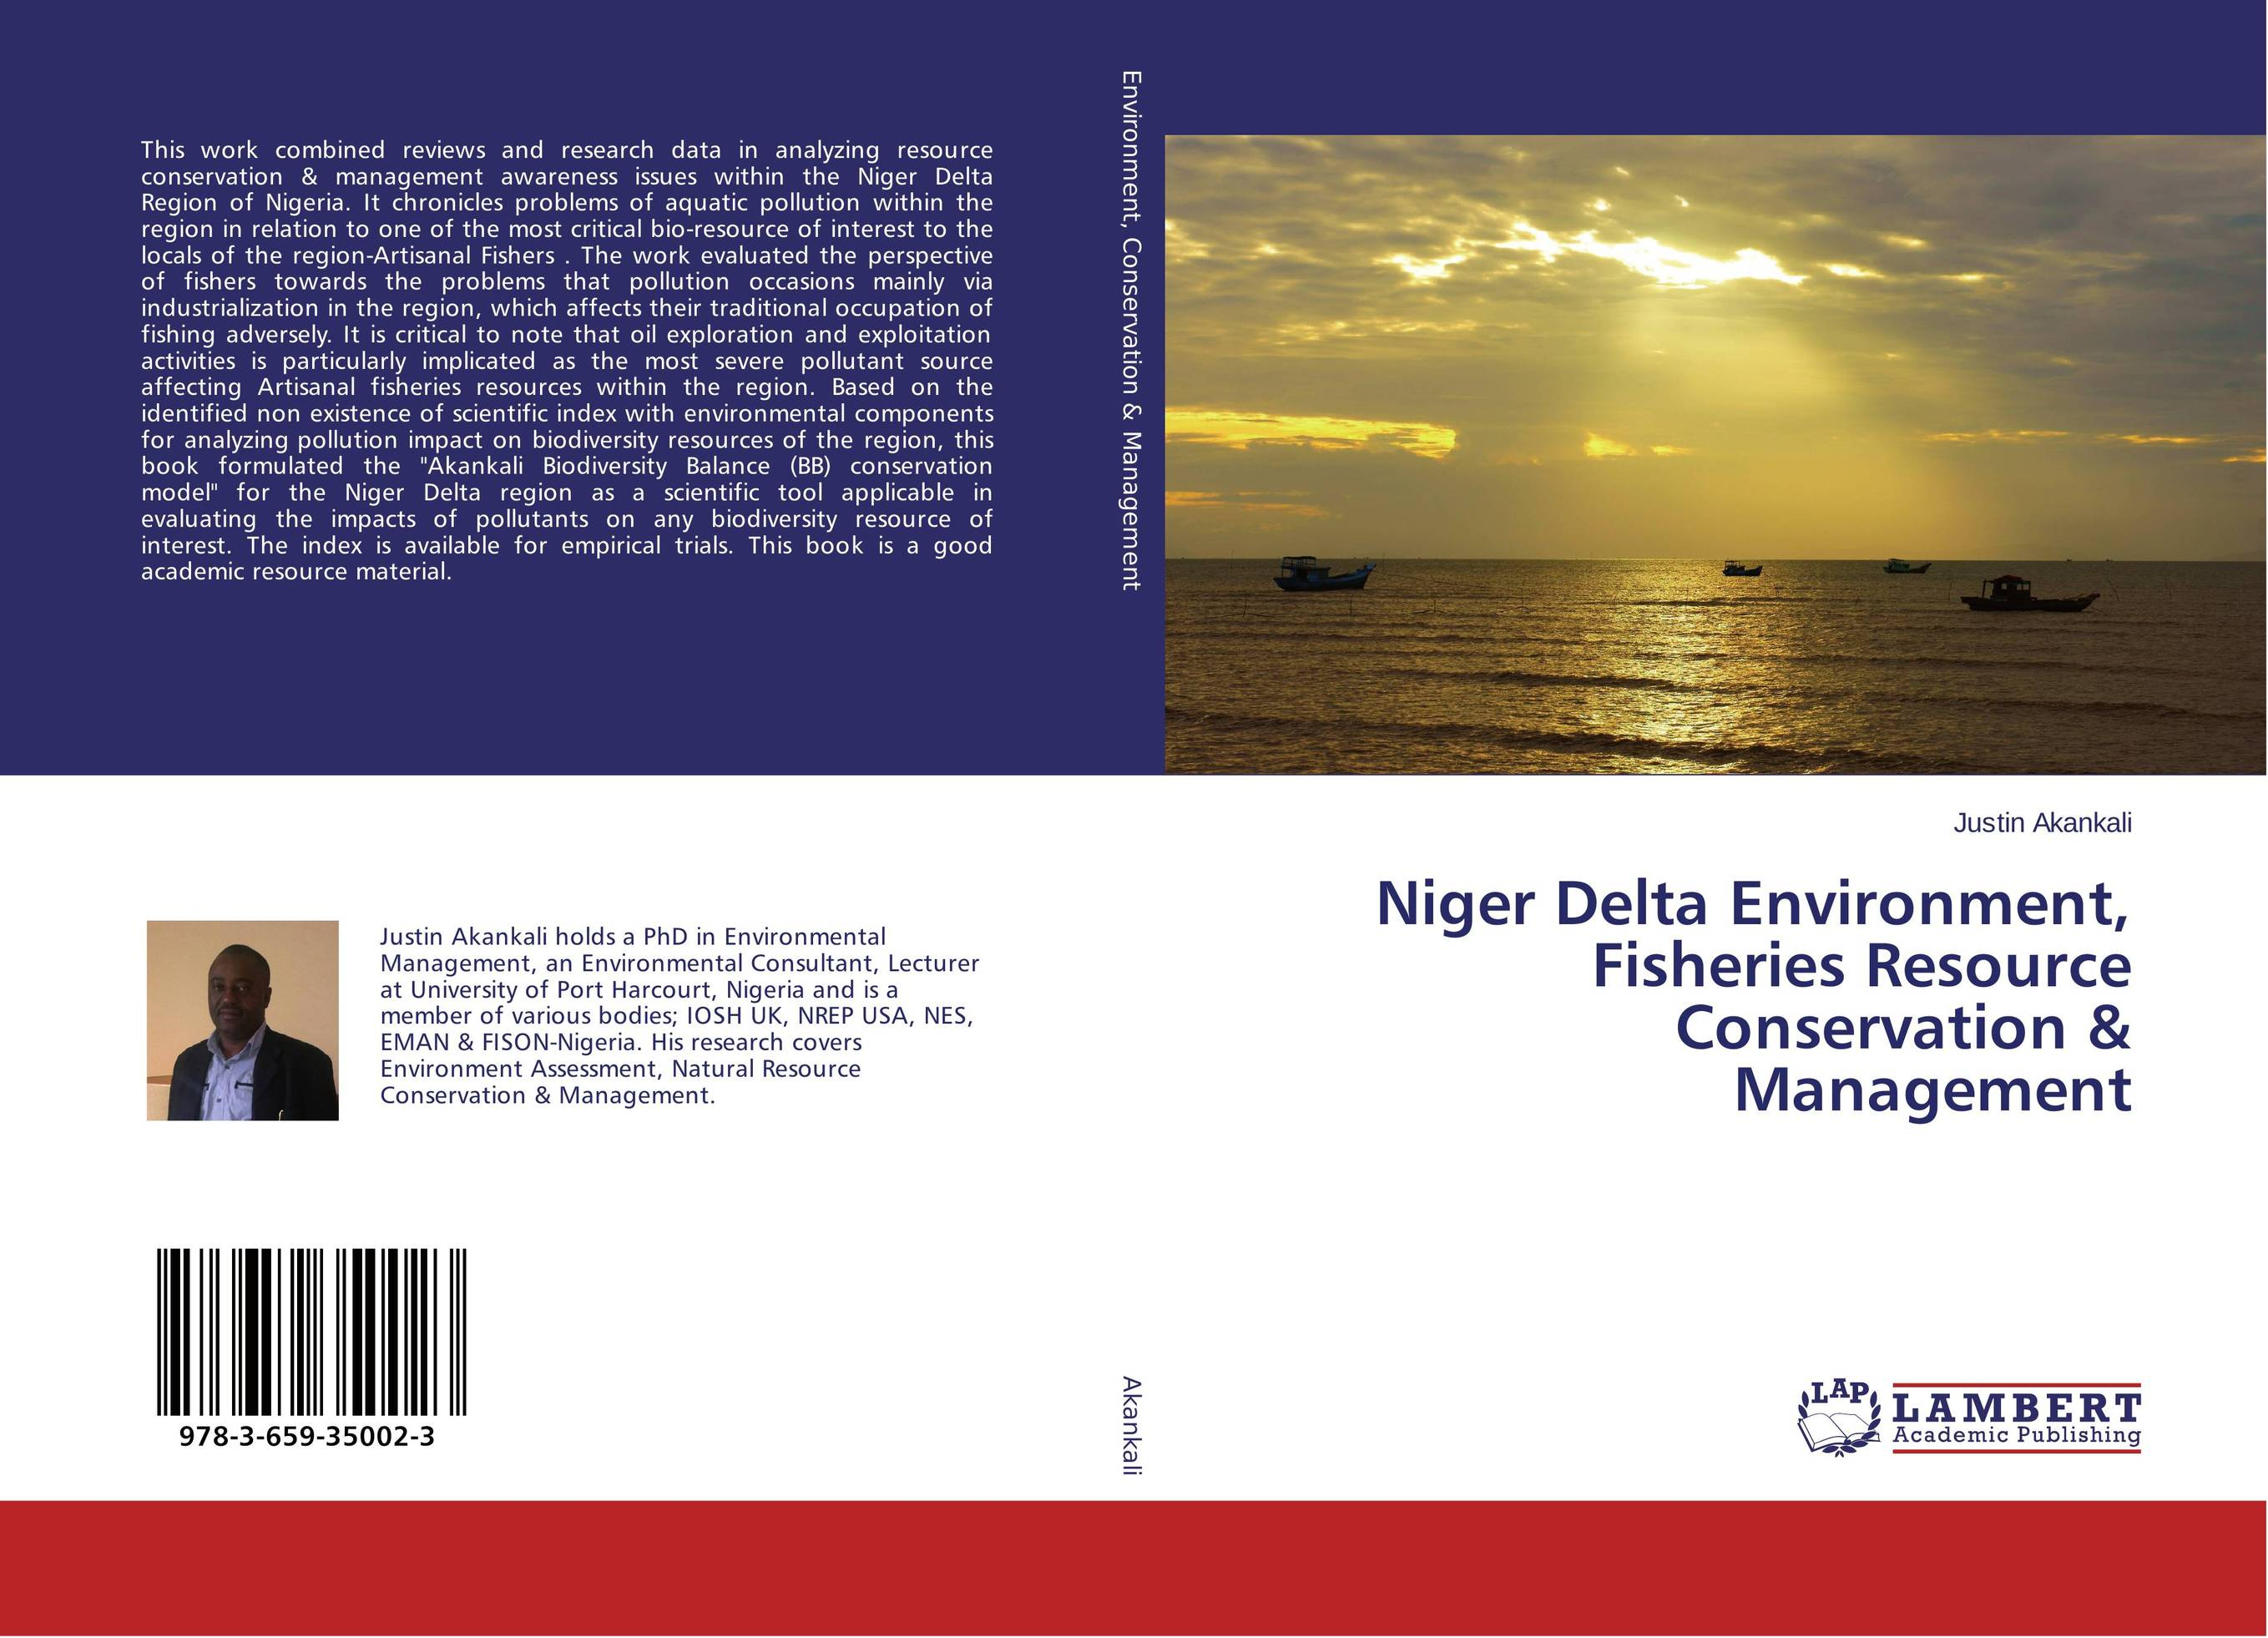 Niger Delta Environment, Fisheries Resource Conservation & Management